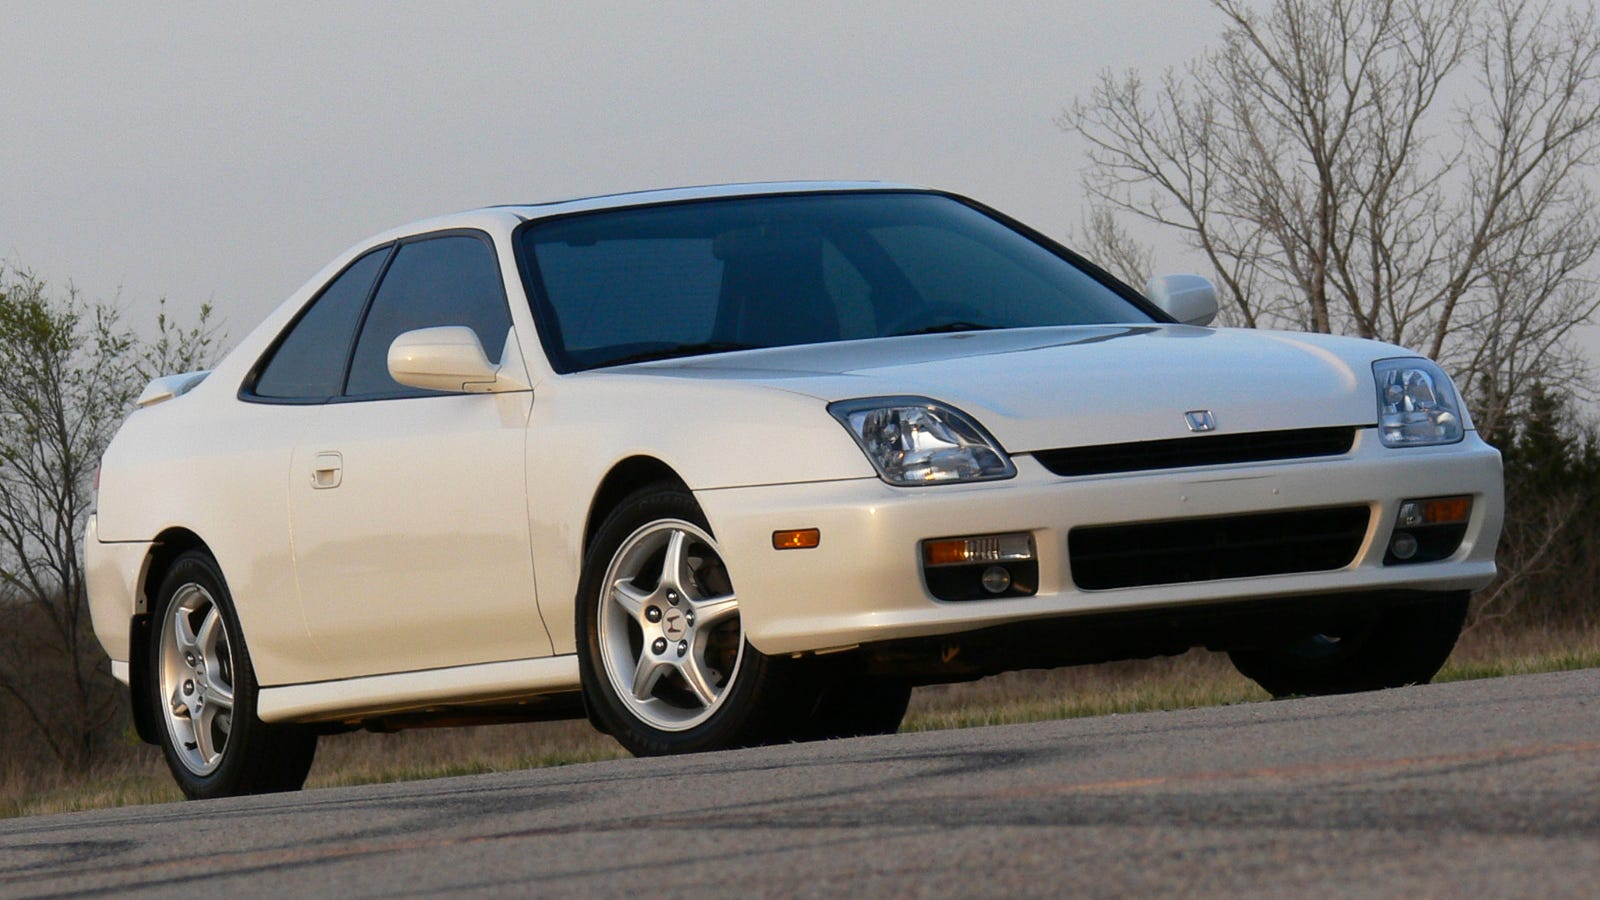 prevalence or subsequent nostalgia that makes enthusiast spec civics and acura integras so desirable today but it was a damn good car in the late 90s